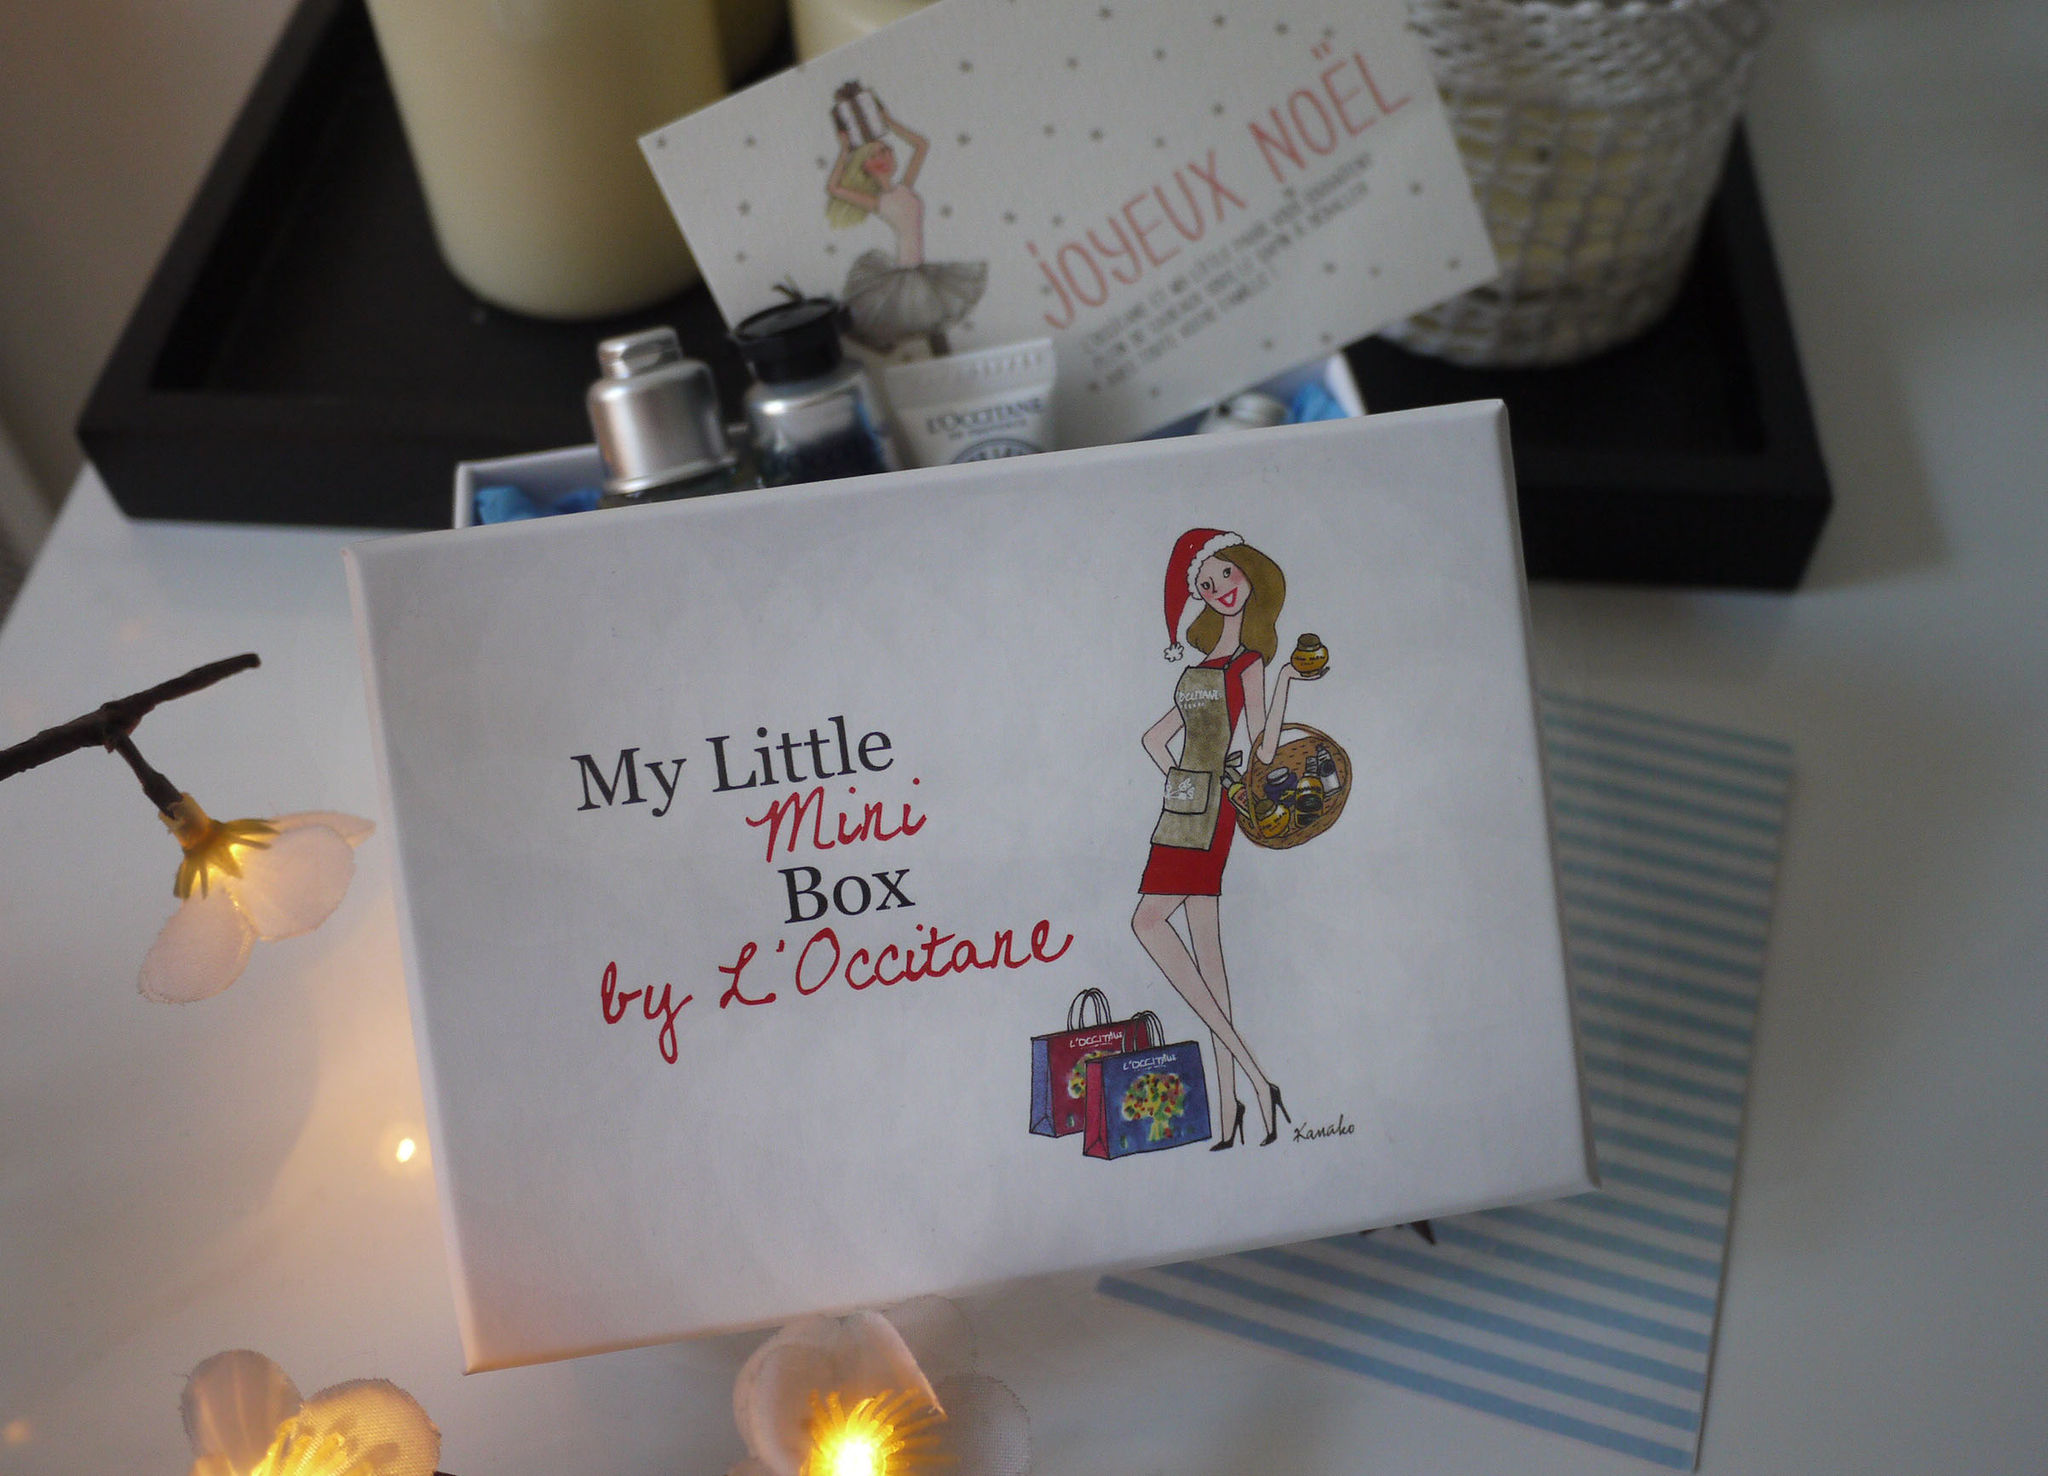 MyLittleBox_L_Occitane